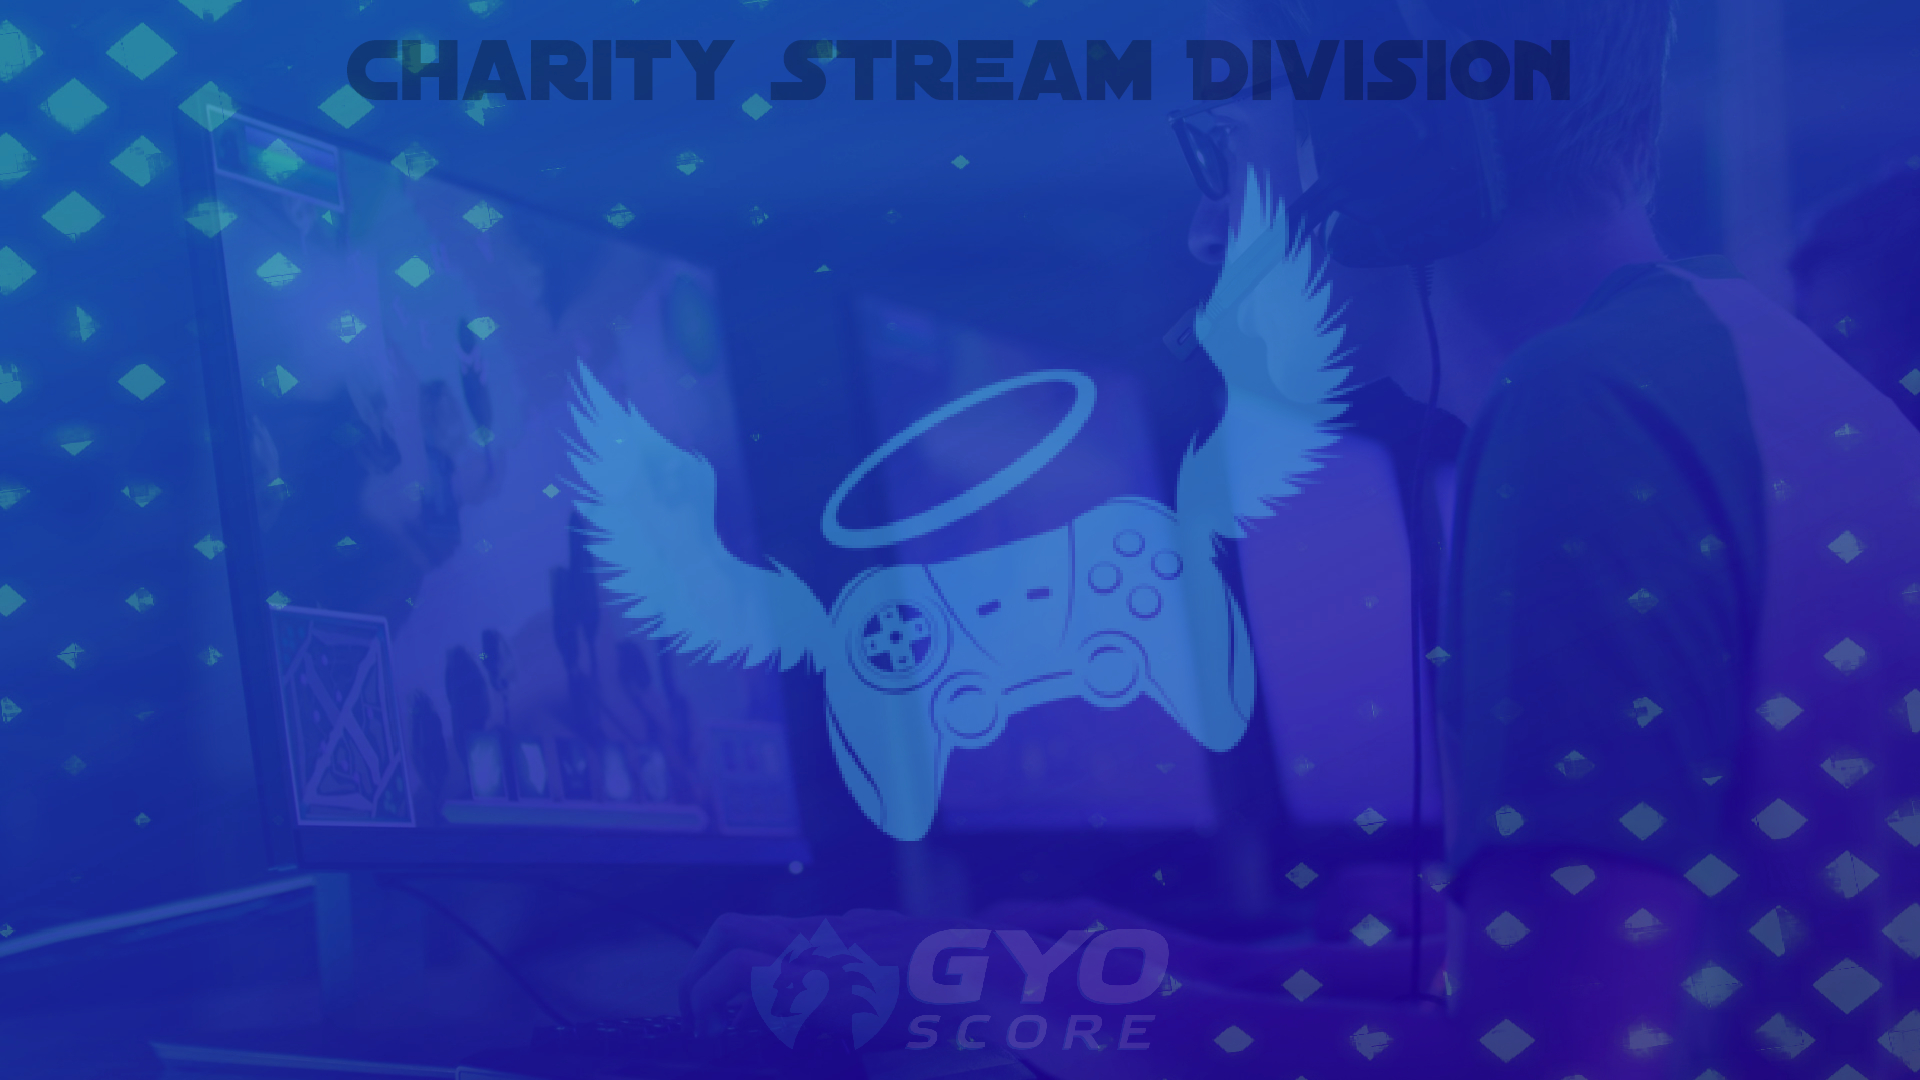 GYO Score Stream Division Feature Image